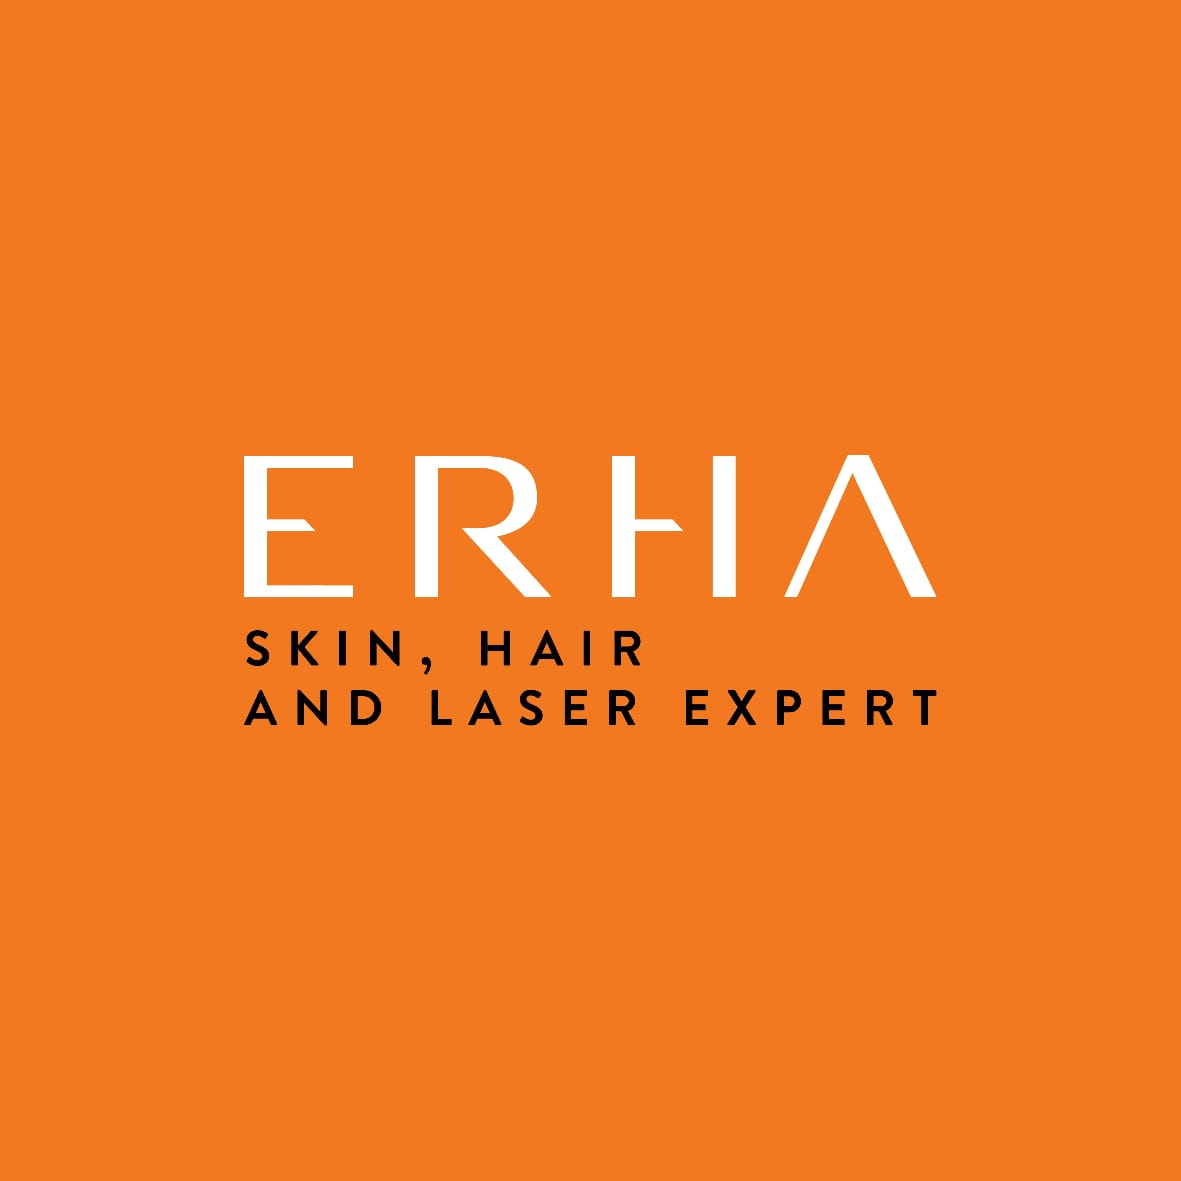 Erha Skin, Hair and Laser Expert.